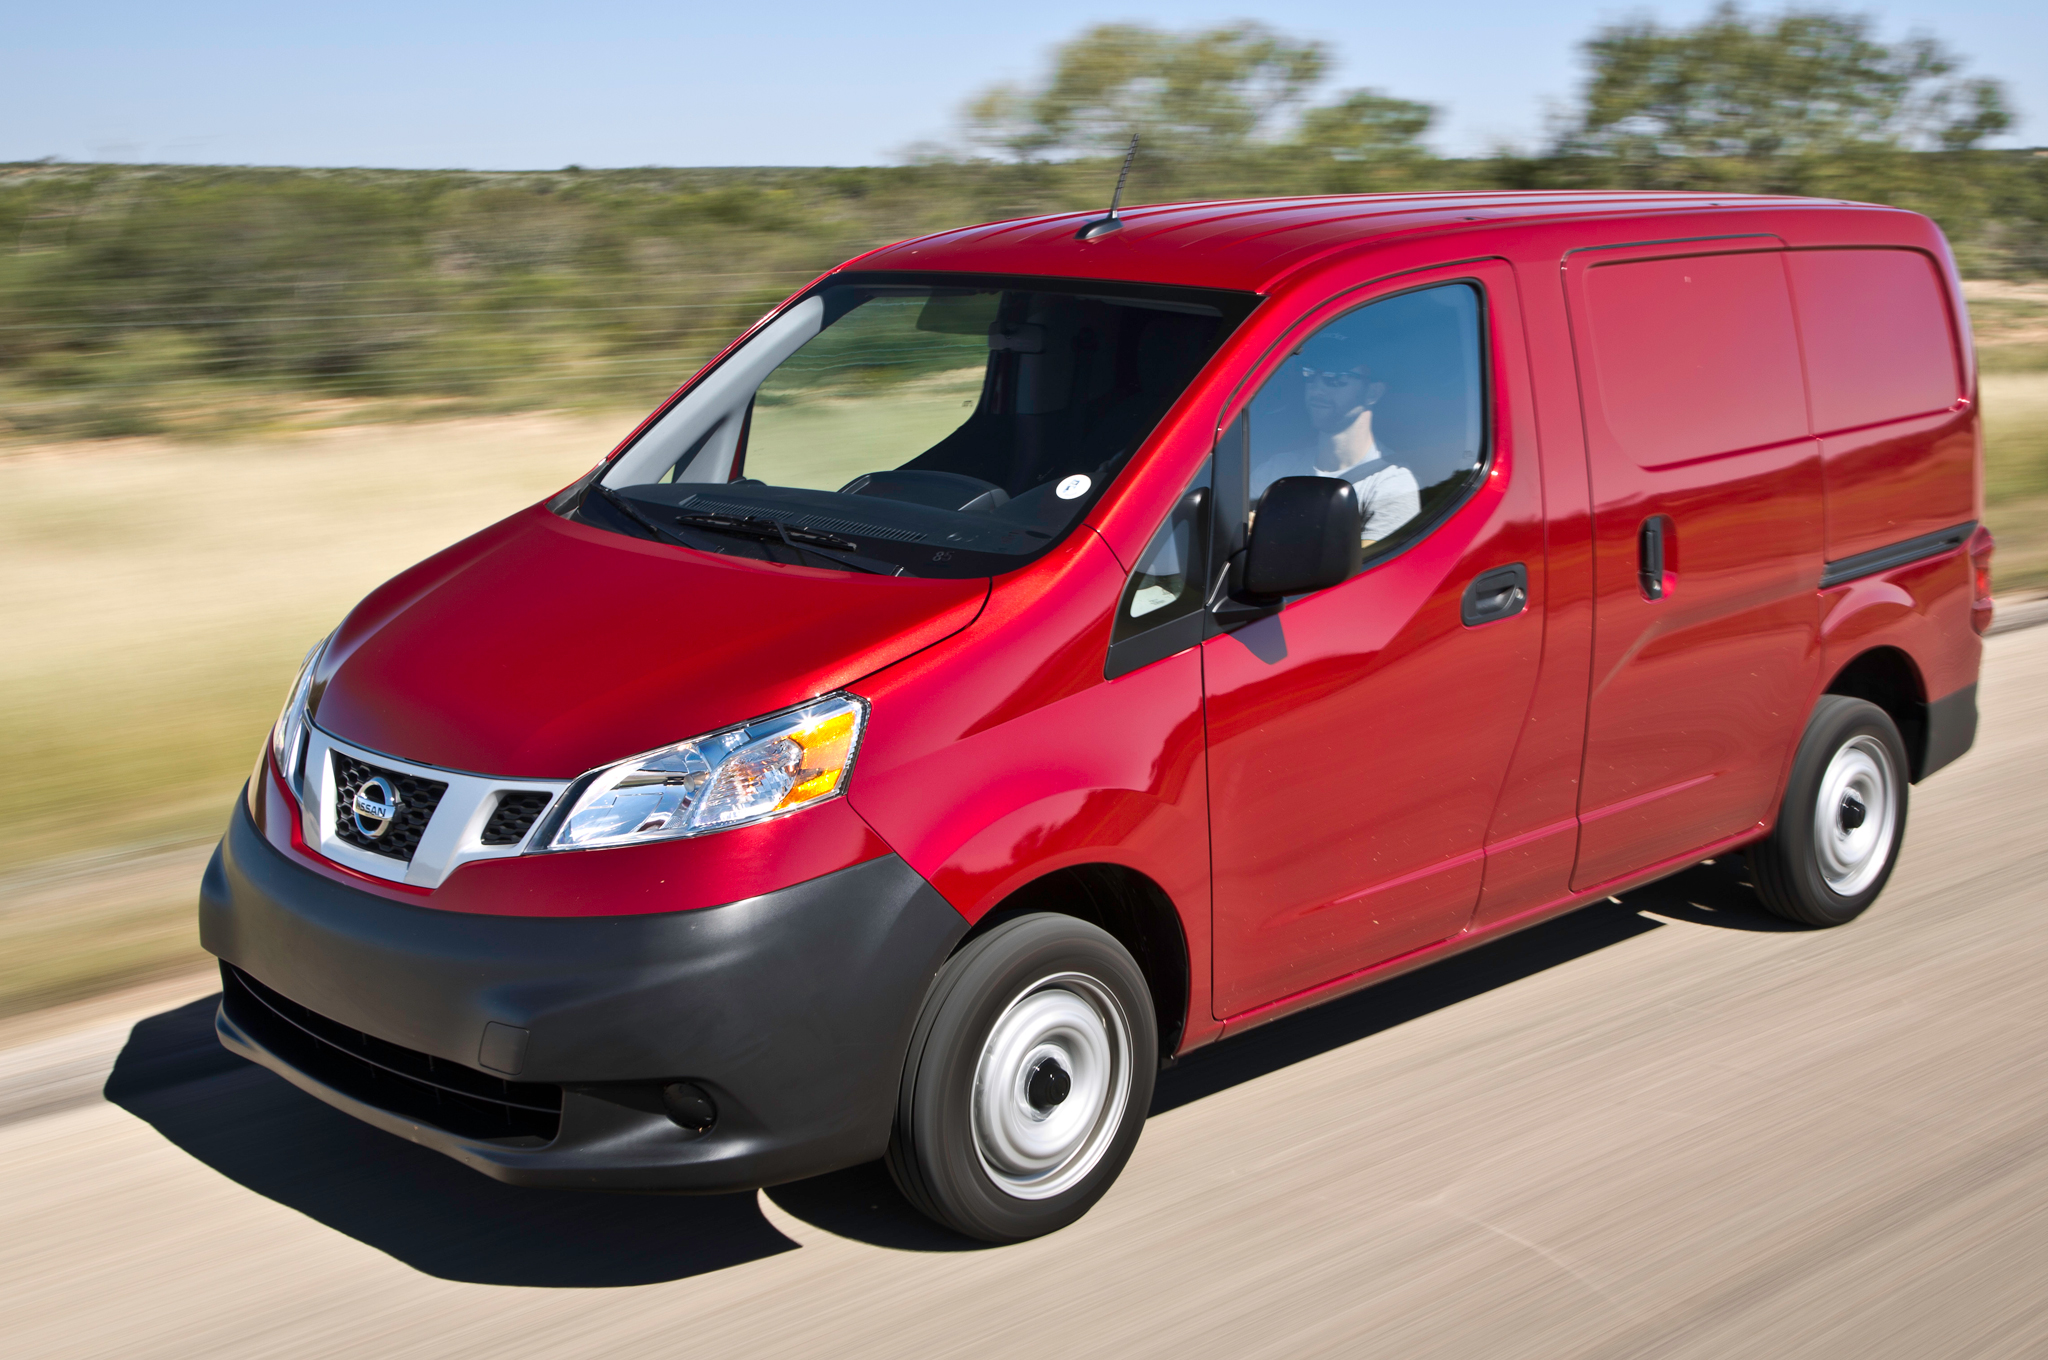 nissan nv200 radio wiring diagram wiring library 2014 motor trend truck of the year contender nissan [ 2048 x 1360 Pixel ]